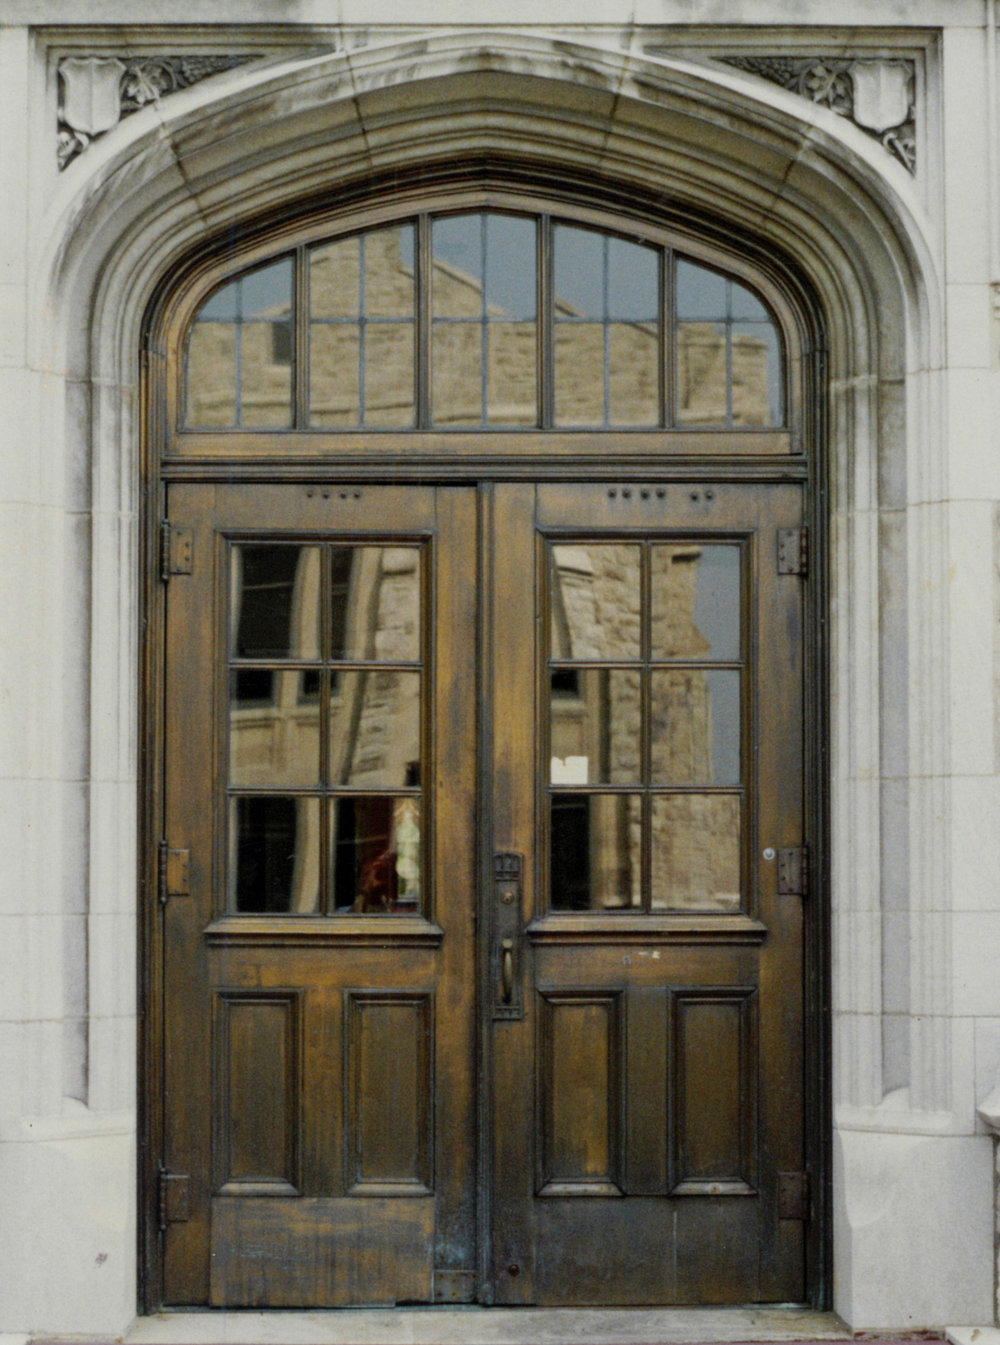 Previously Wood, Now Aged Bronze Doors